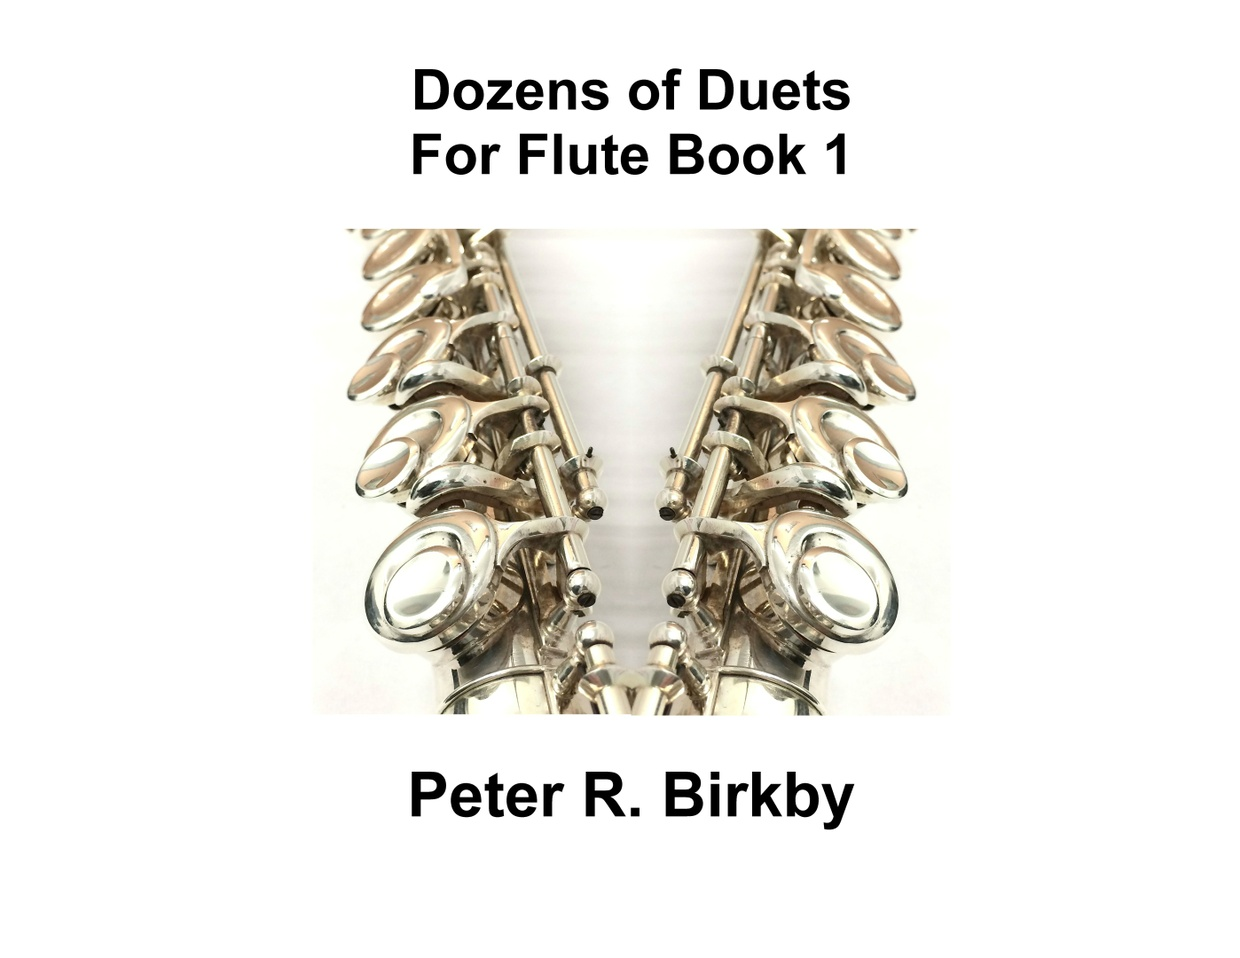 Dozens of Duets for Flutes Book 1